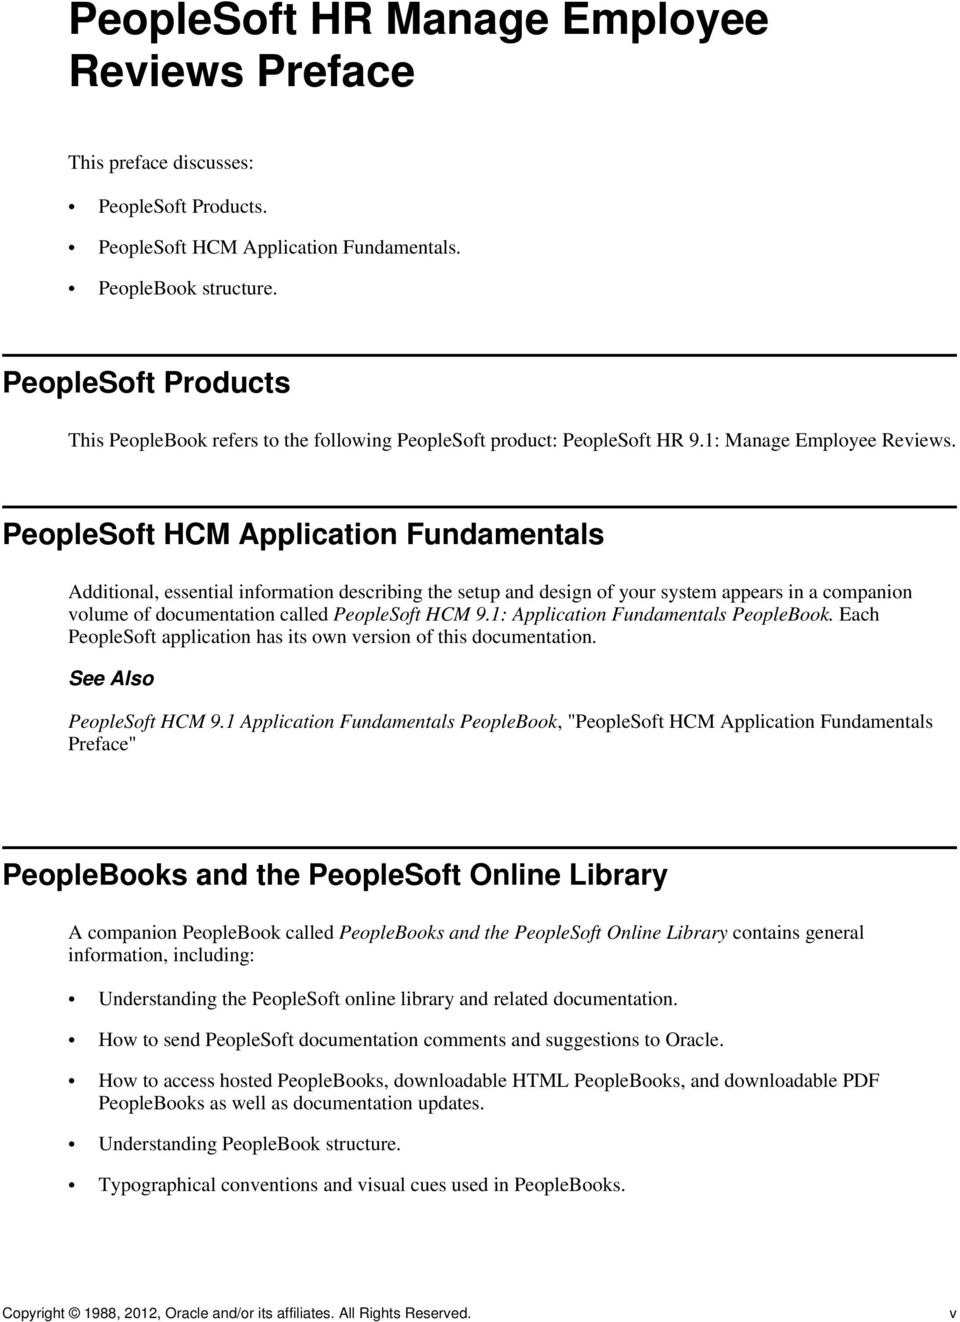 PeopleSoft HCM Application Fundamentals Additional, essential information describing the setup and design of your system appears in a companion volume of documentation called PeopleSoft HCM 9.